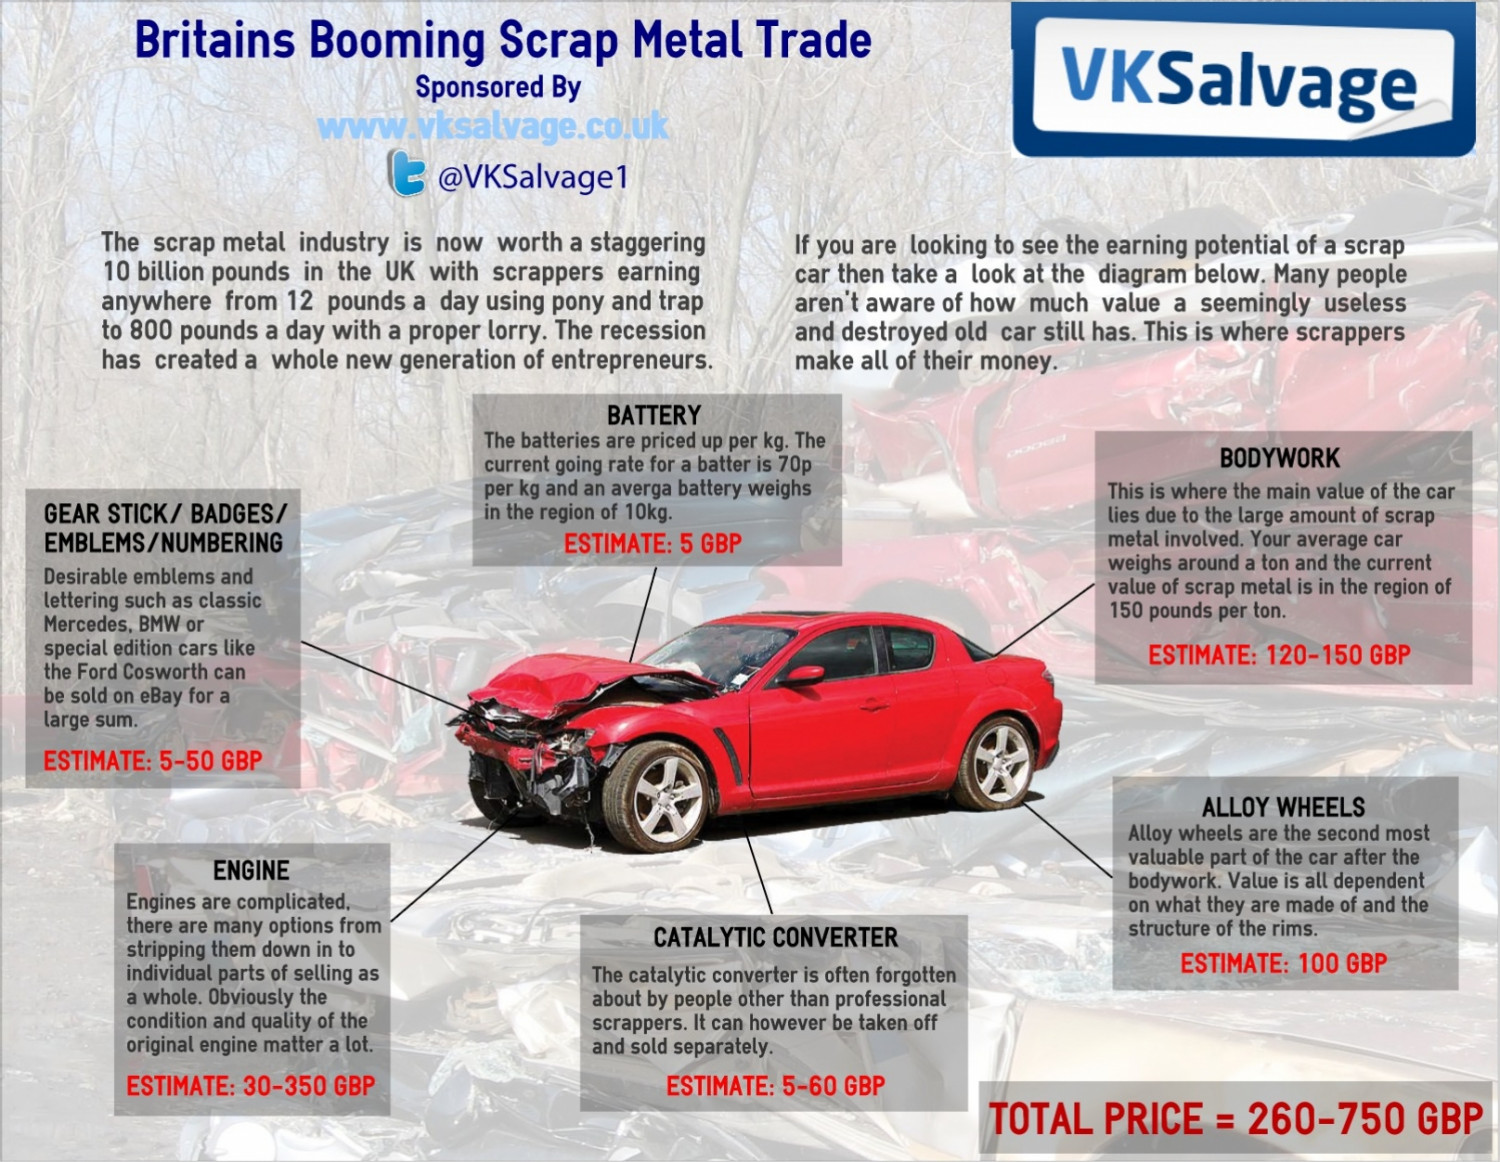 Britains Booming Scrap Metal Trade | Visual.ly